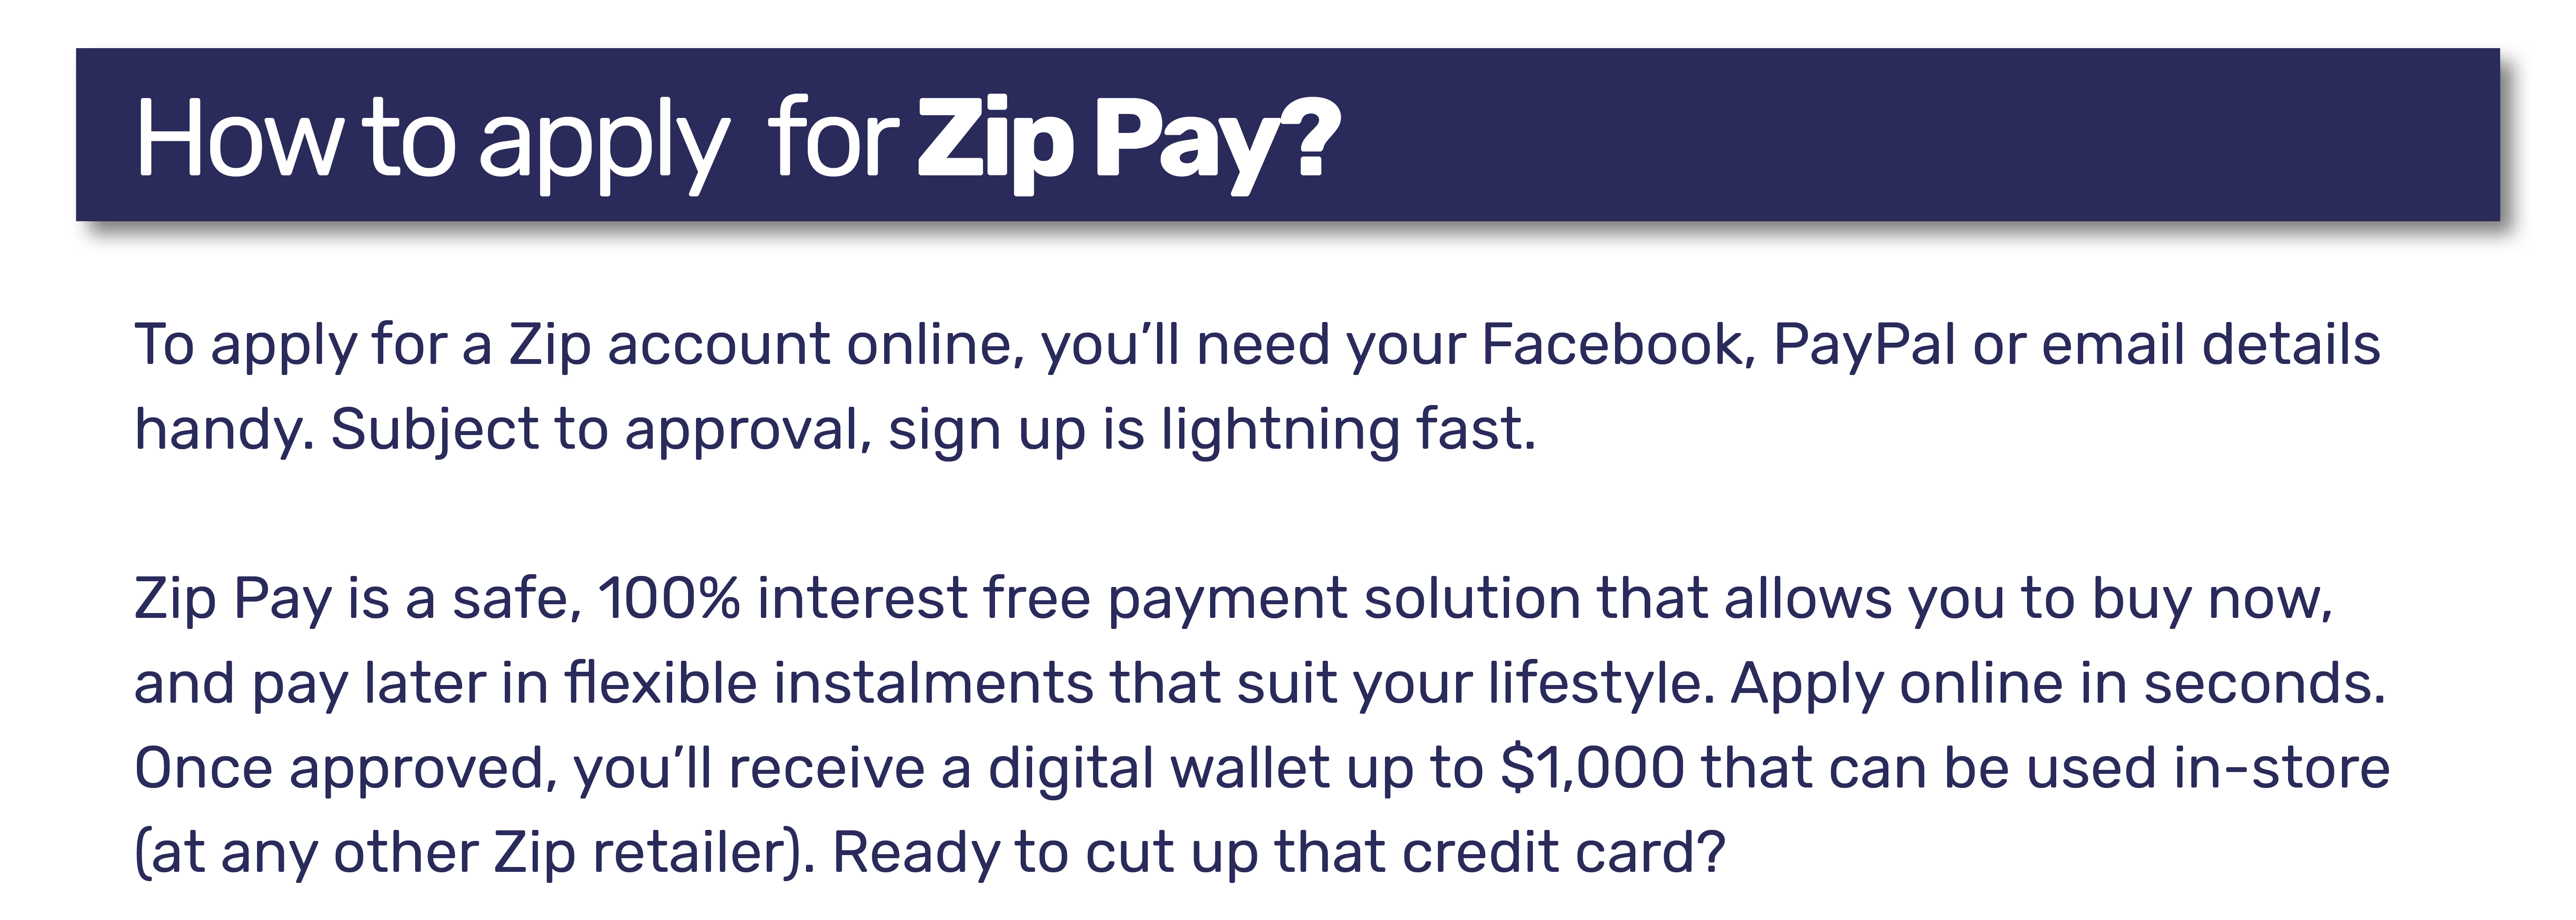 How to apply for Zip Pay